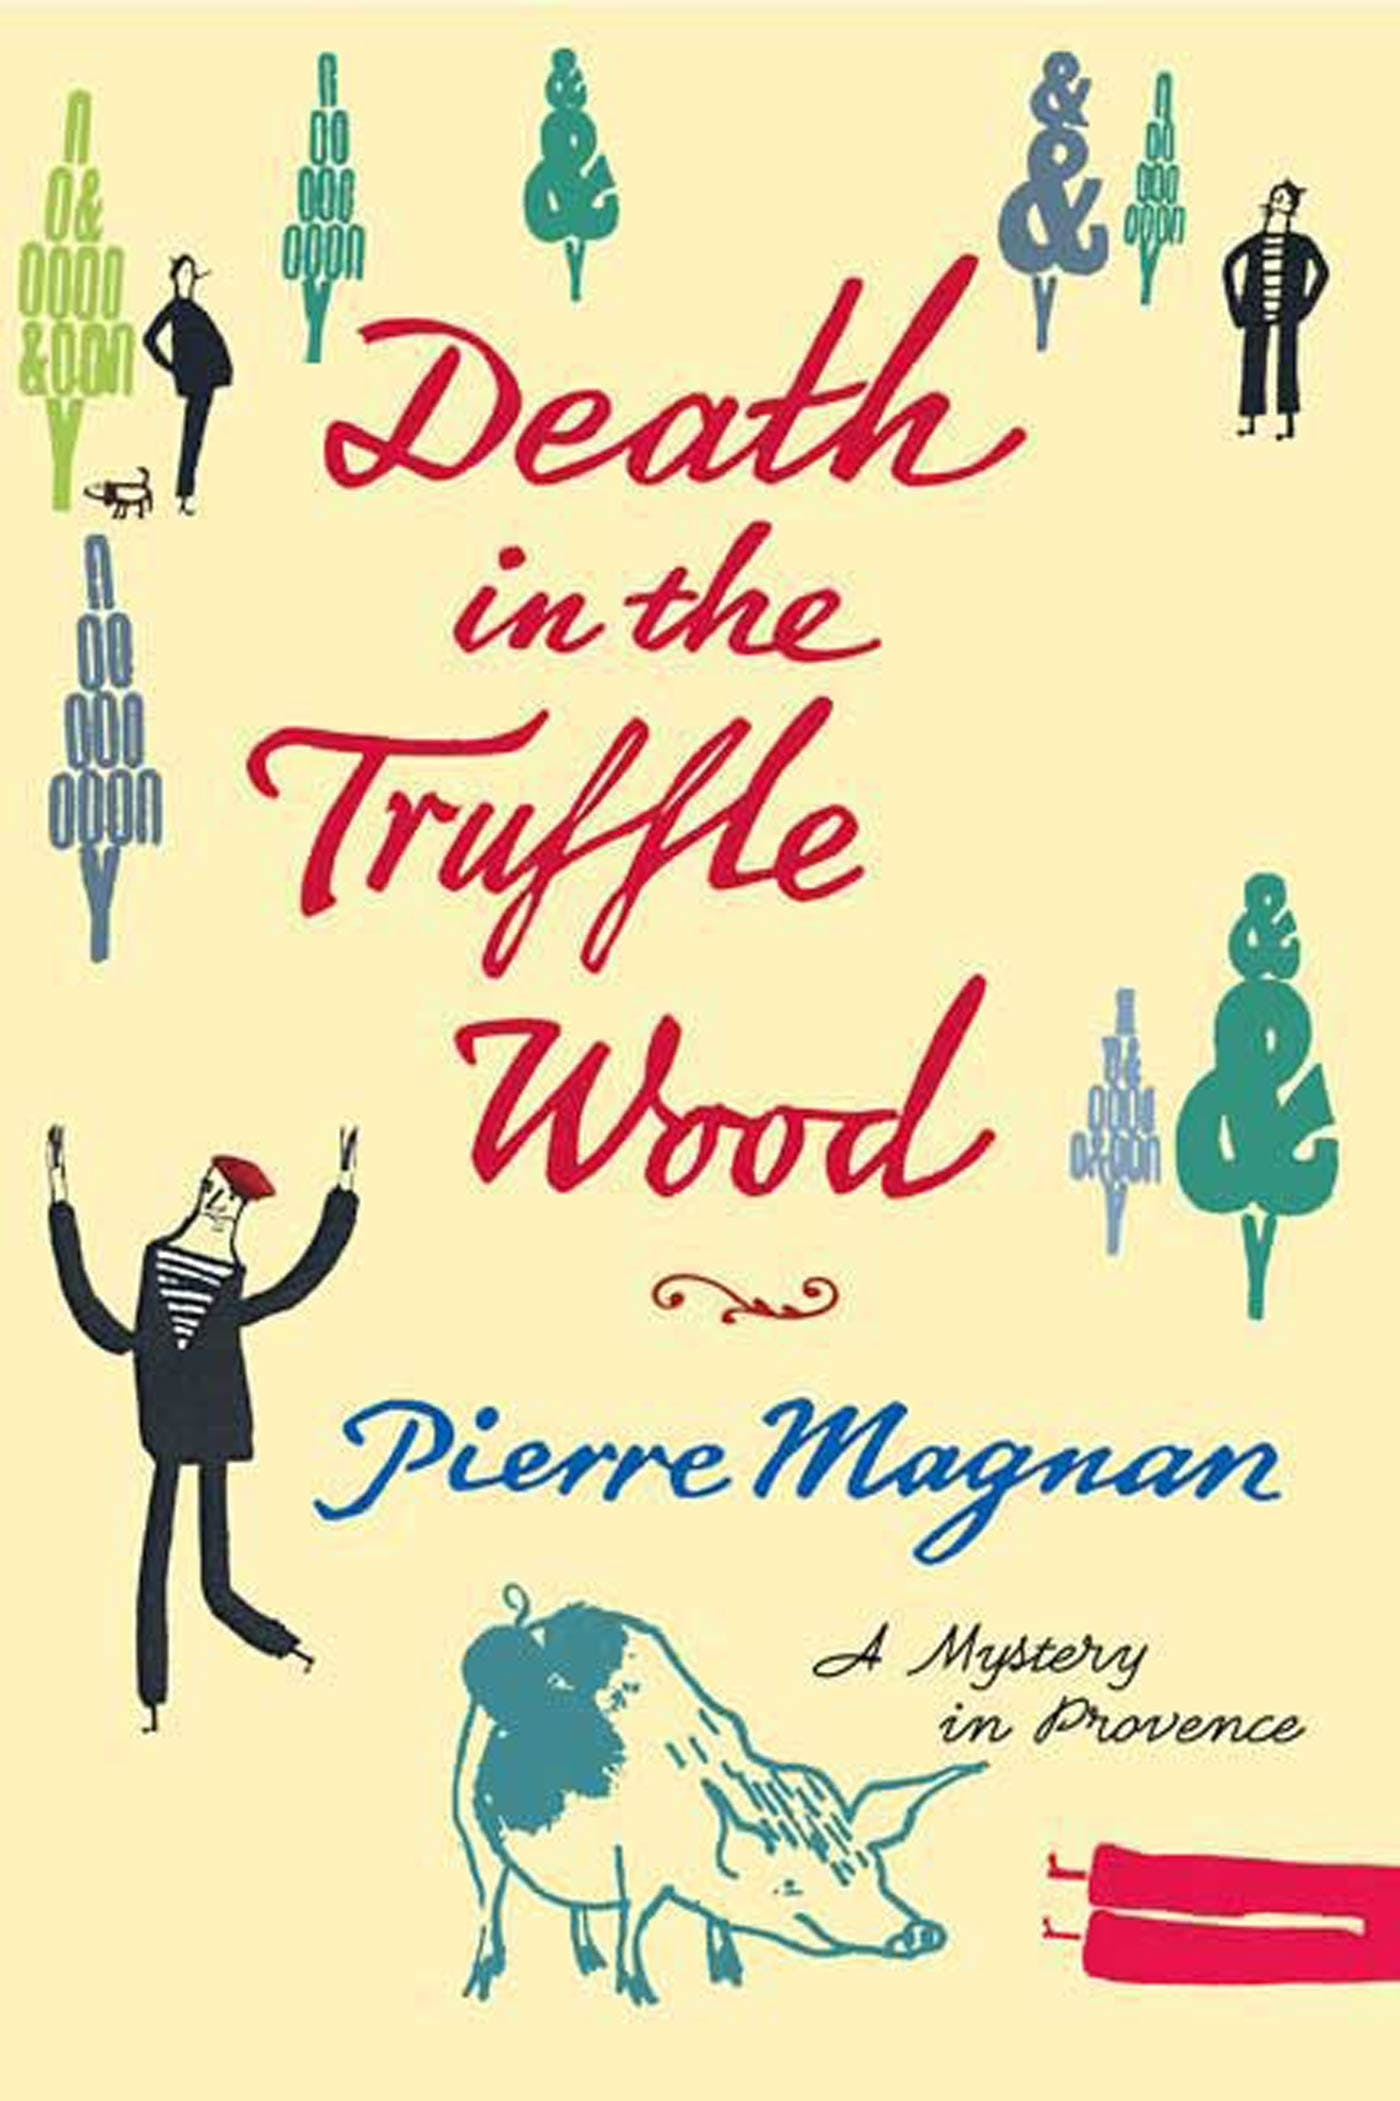 Image of Death in the Truffle Wood